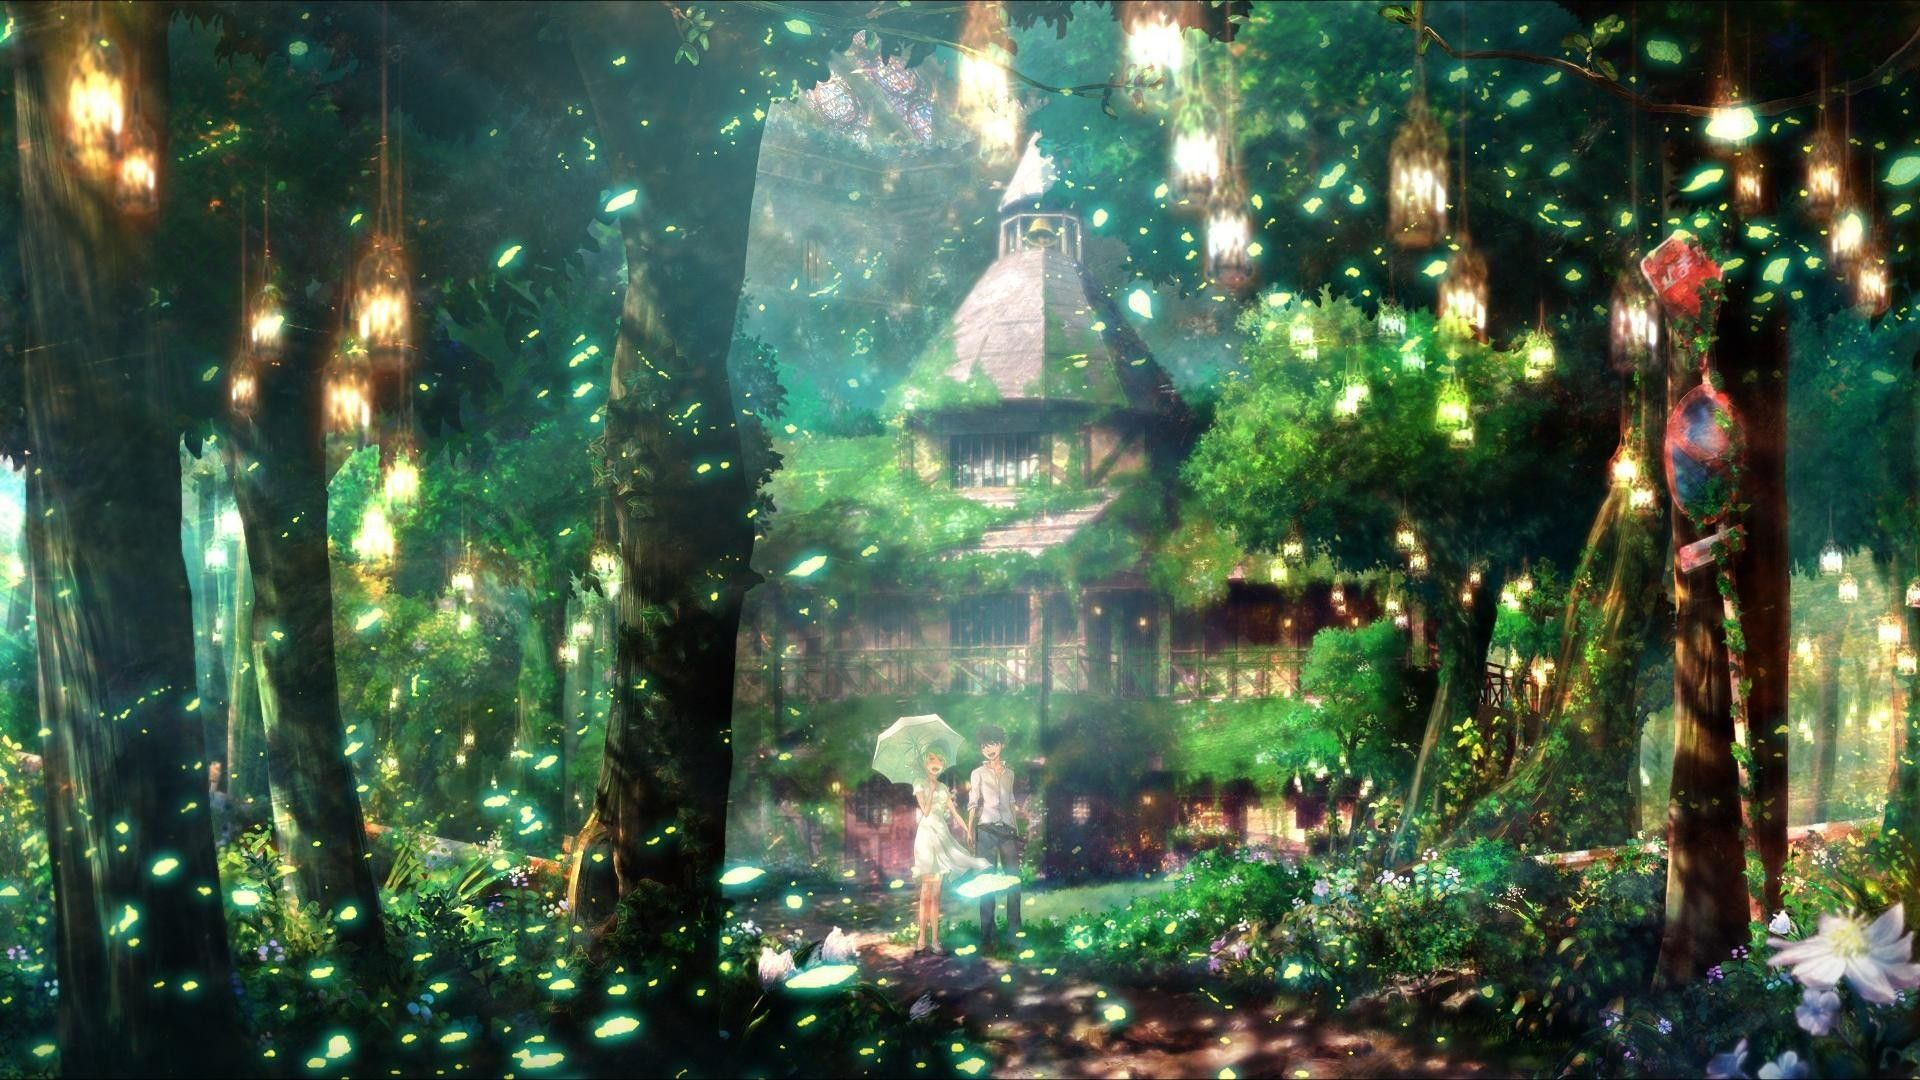 Anime Backgrounds Aesthetic posted by John Tremblay